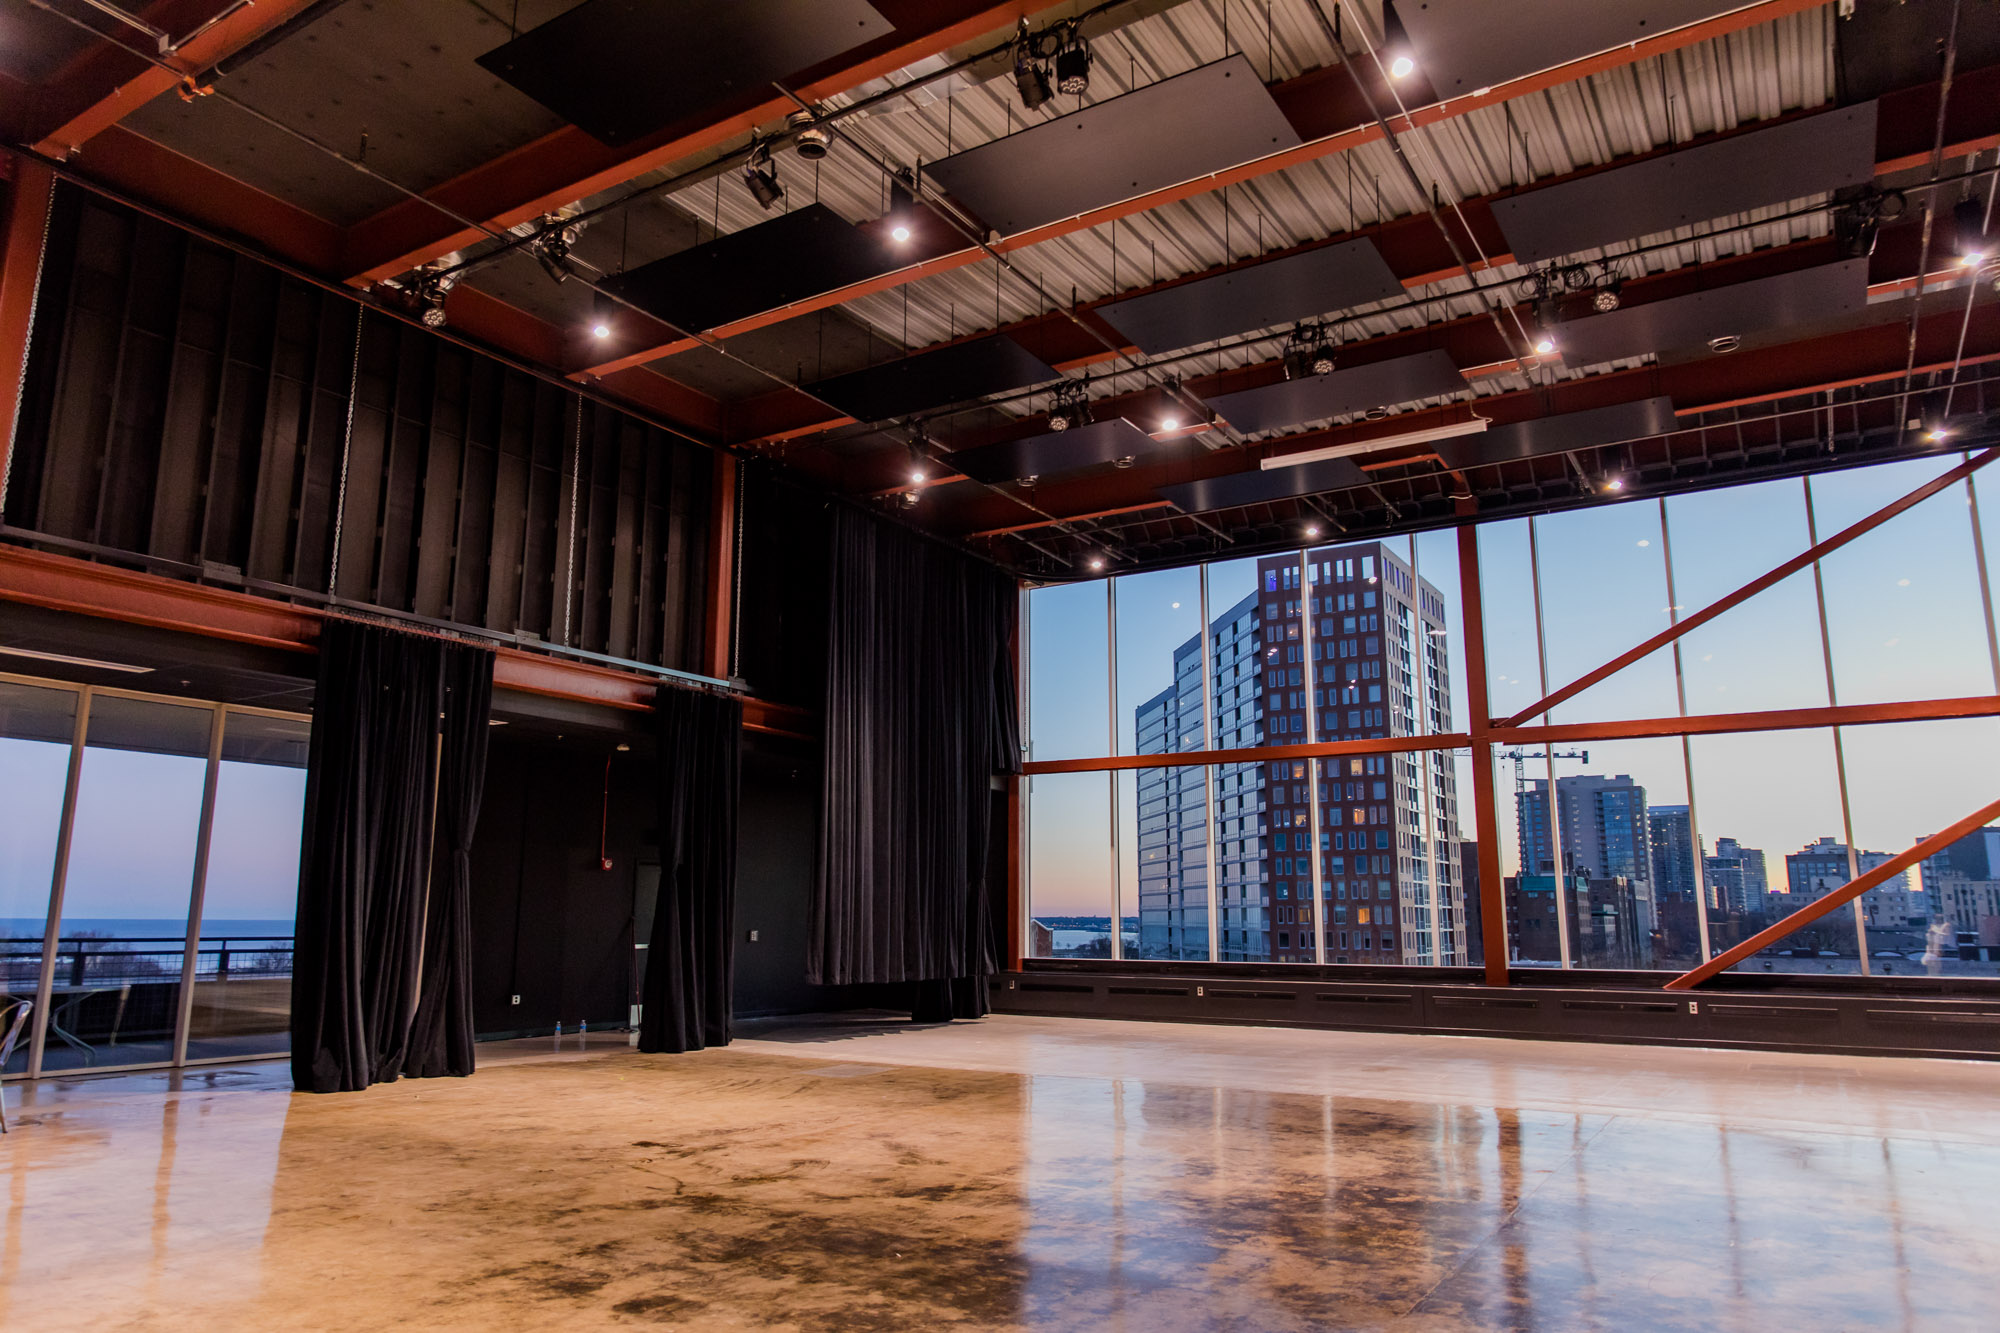 jan serr studio, psoa, kennilworth building, uwm wedding, wedding photography, wedding venue, event venue, milwaukee event space, milwaukee eastside venue, studio k10, milwaukee wedding photographer, austin wedding photographer, milwaukee commercial photographer, austin commercial photographer